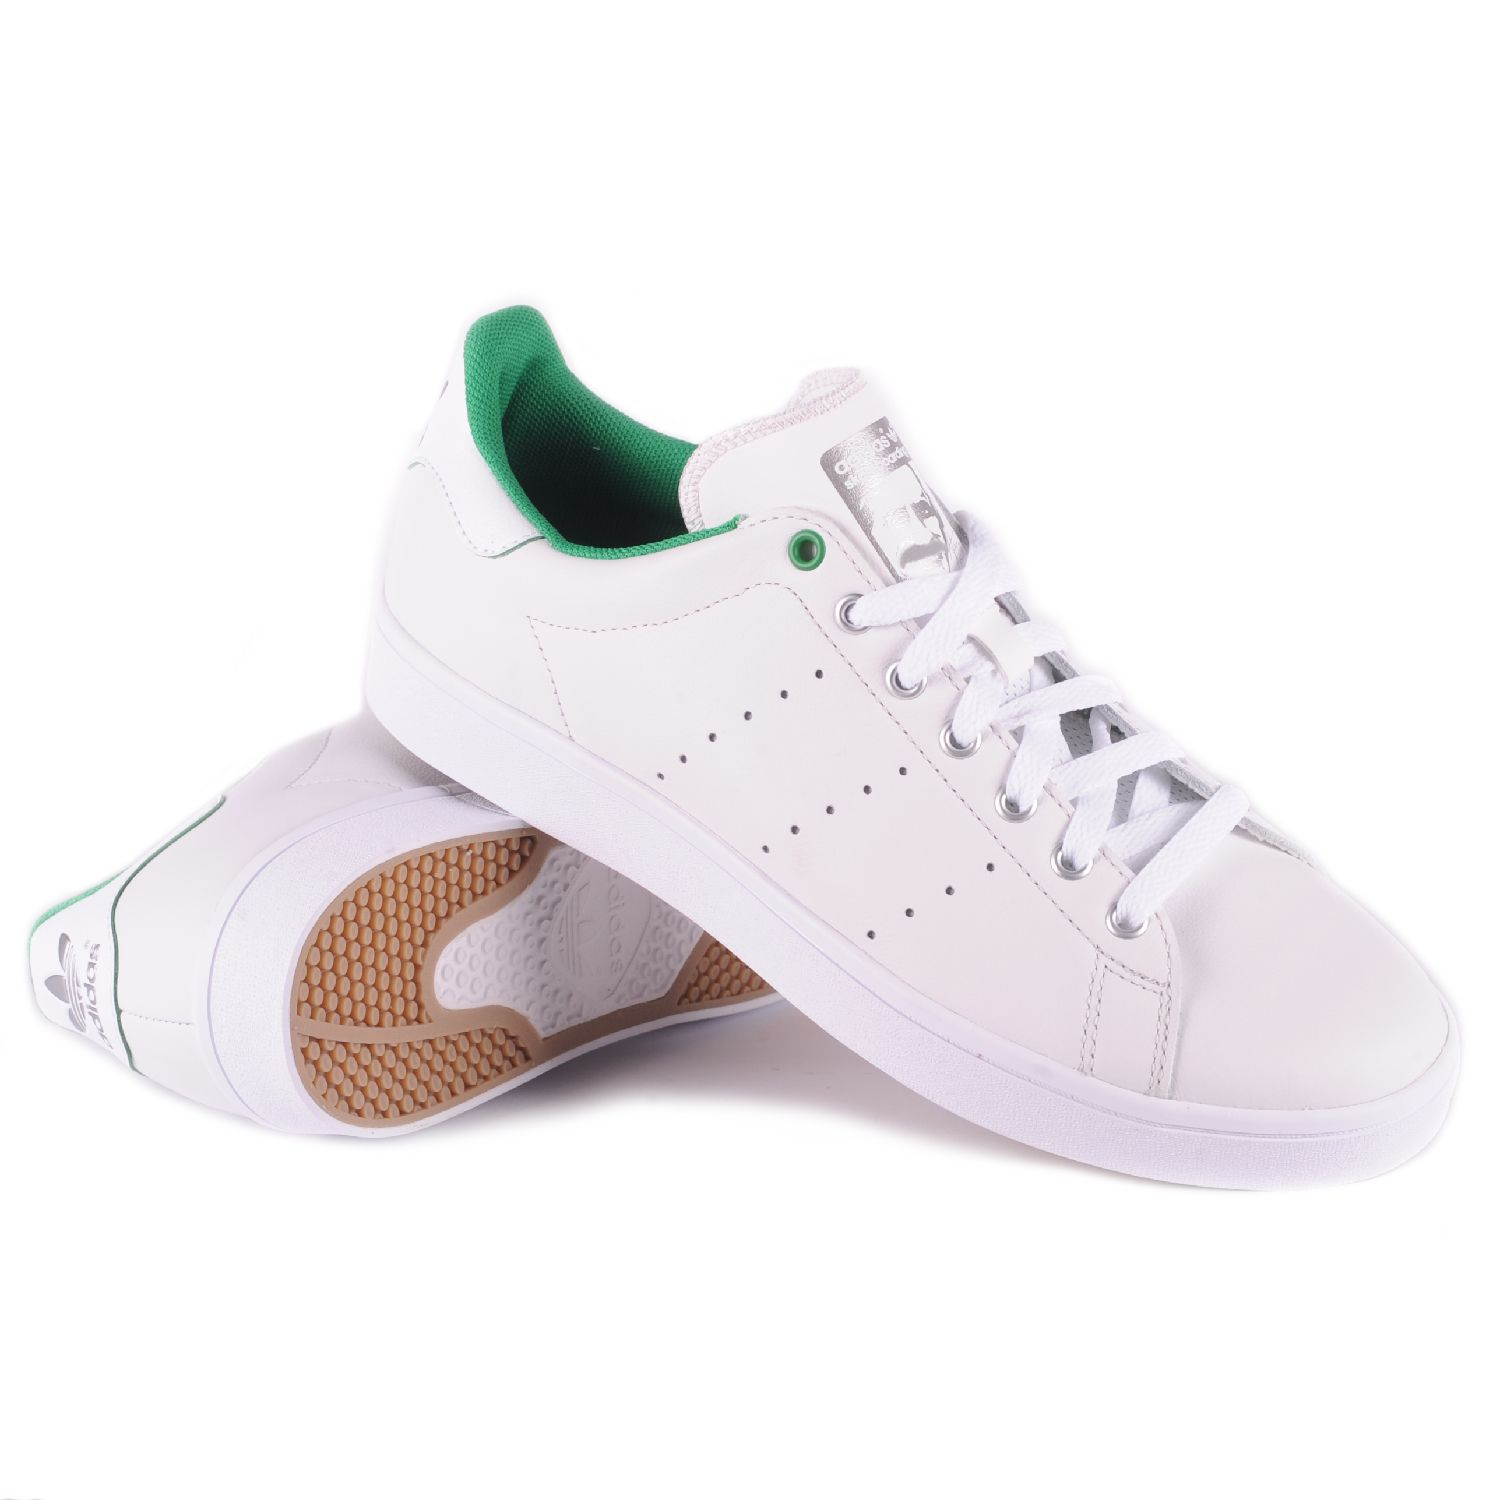 the latest 587d6 014b6 Adidas Stan Smith Vulc (Vintage White/Green/White) Men's ...